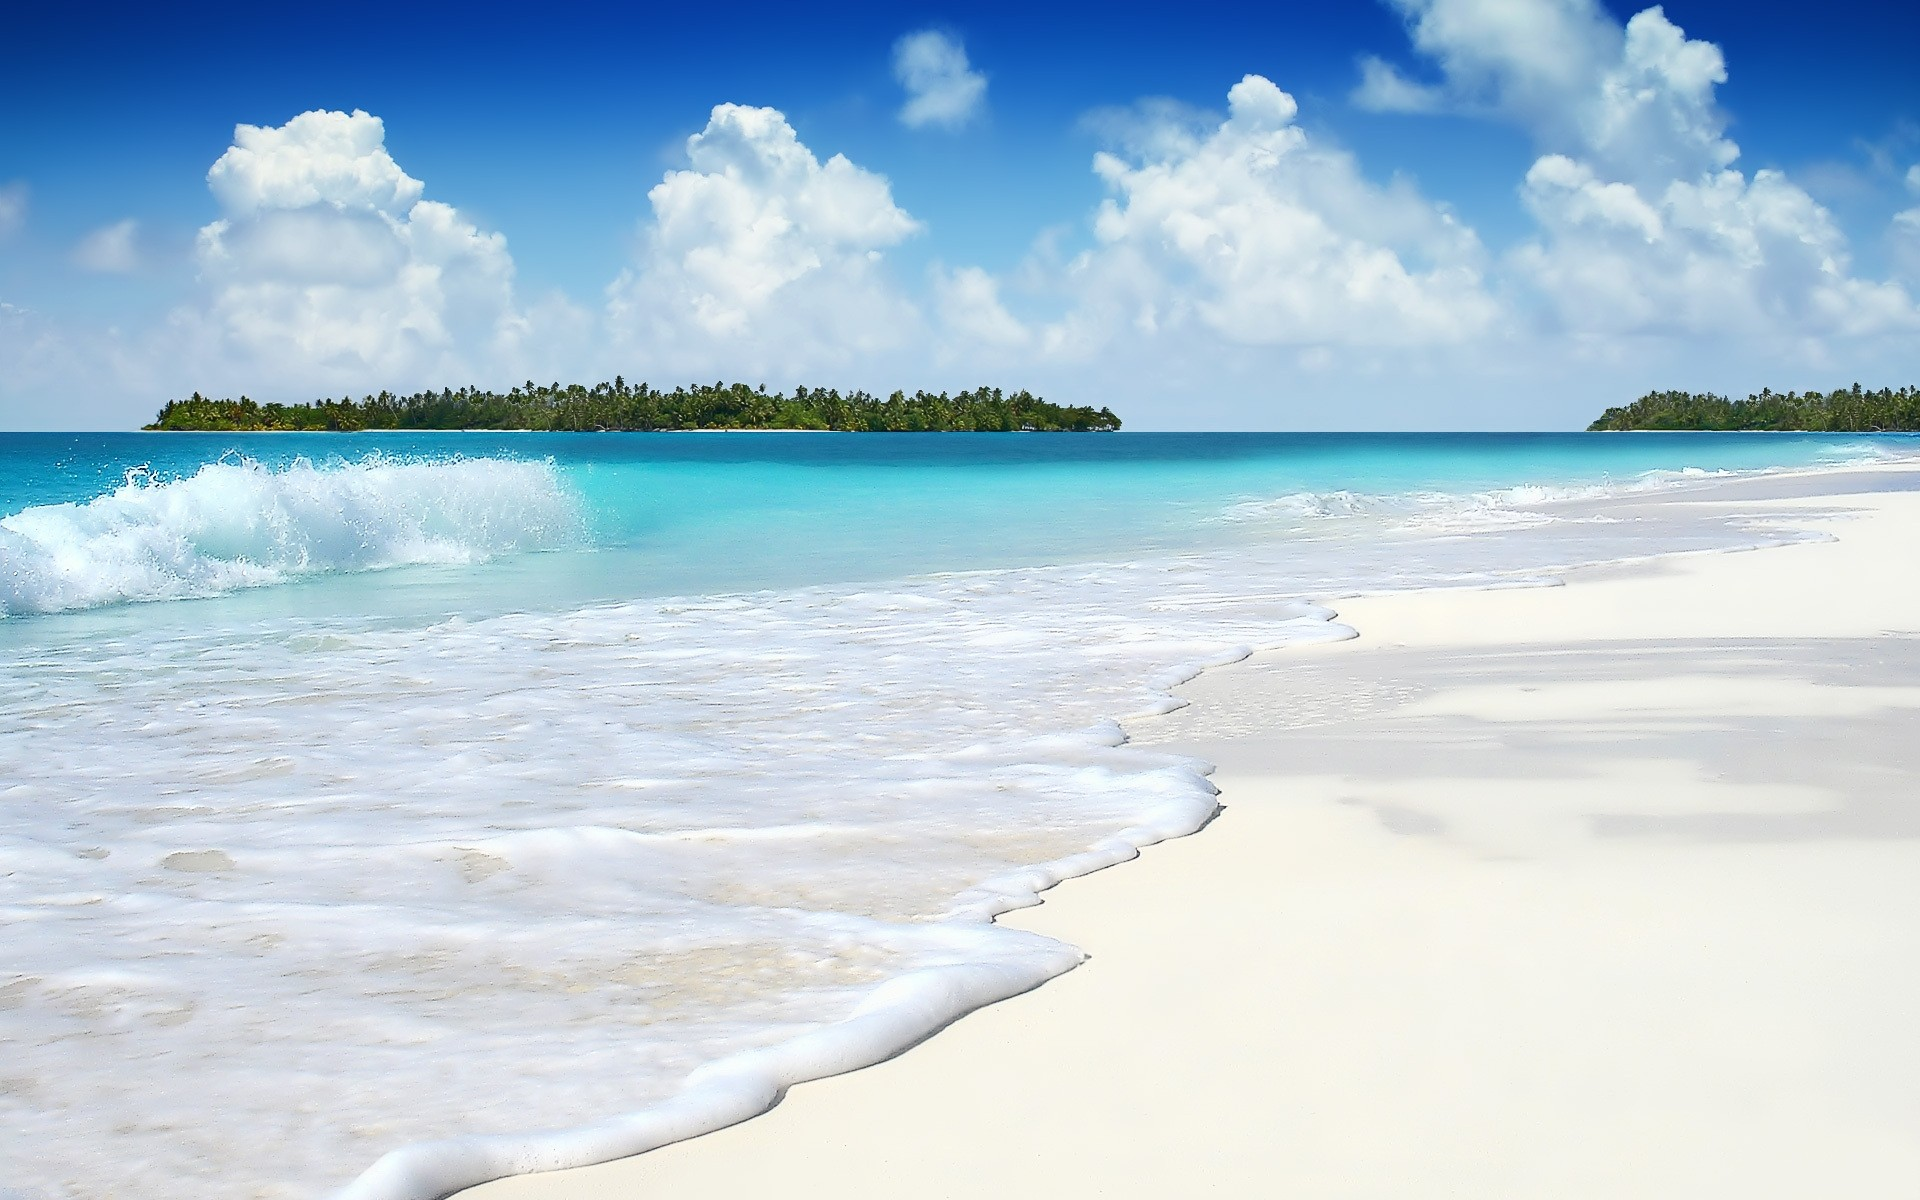 Hermosa playa , 1920x1200 100 bellos paisajes wallpapers HD